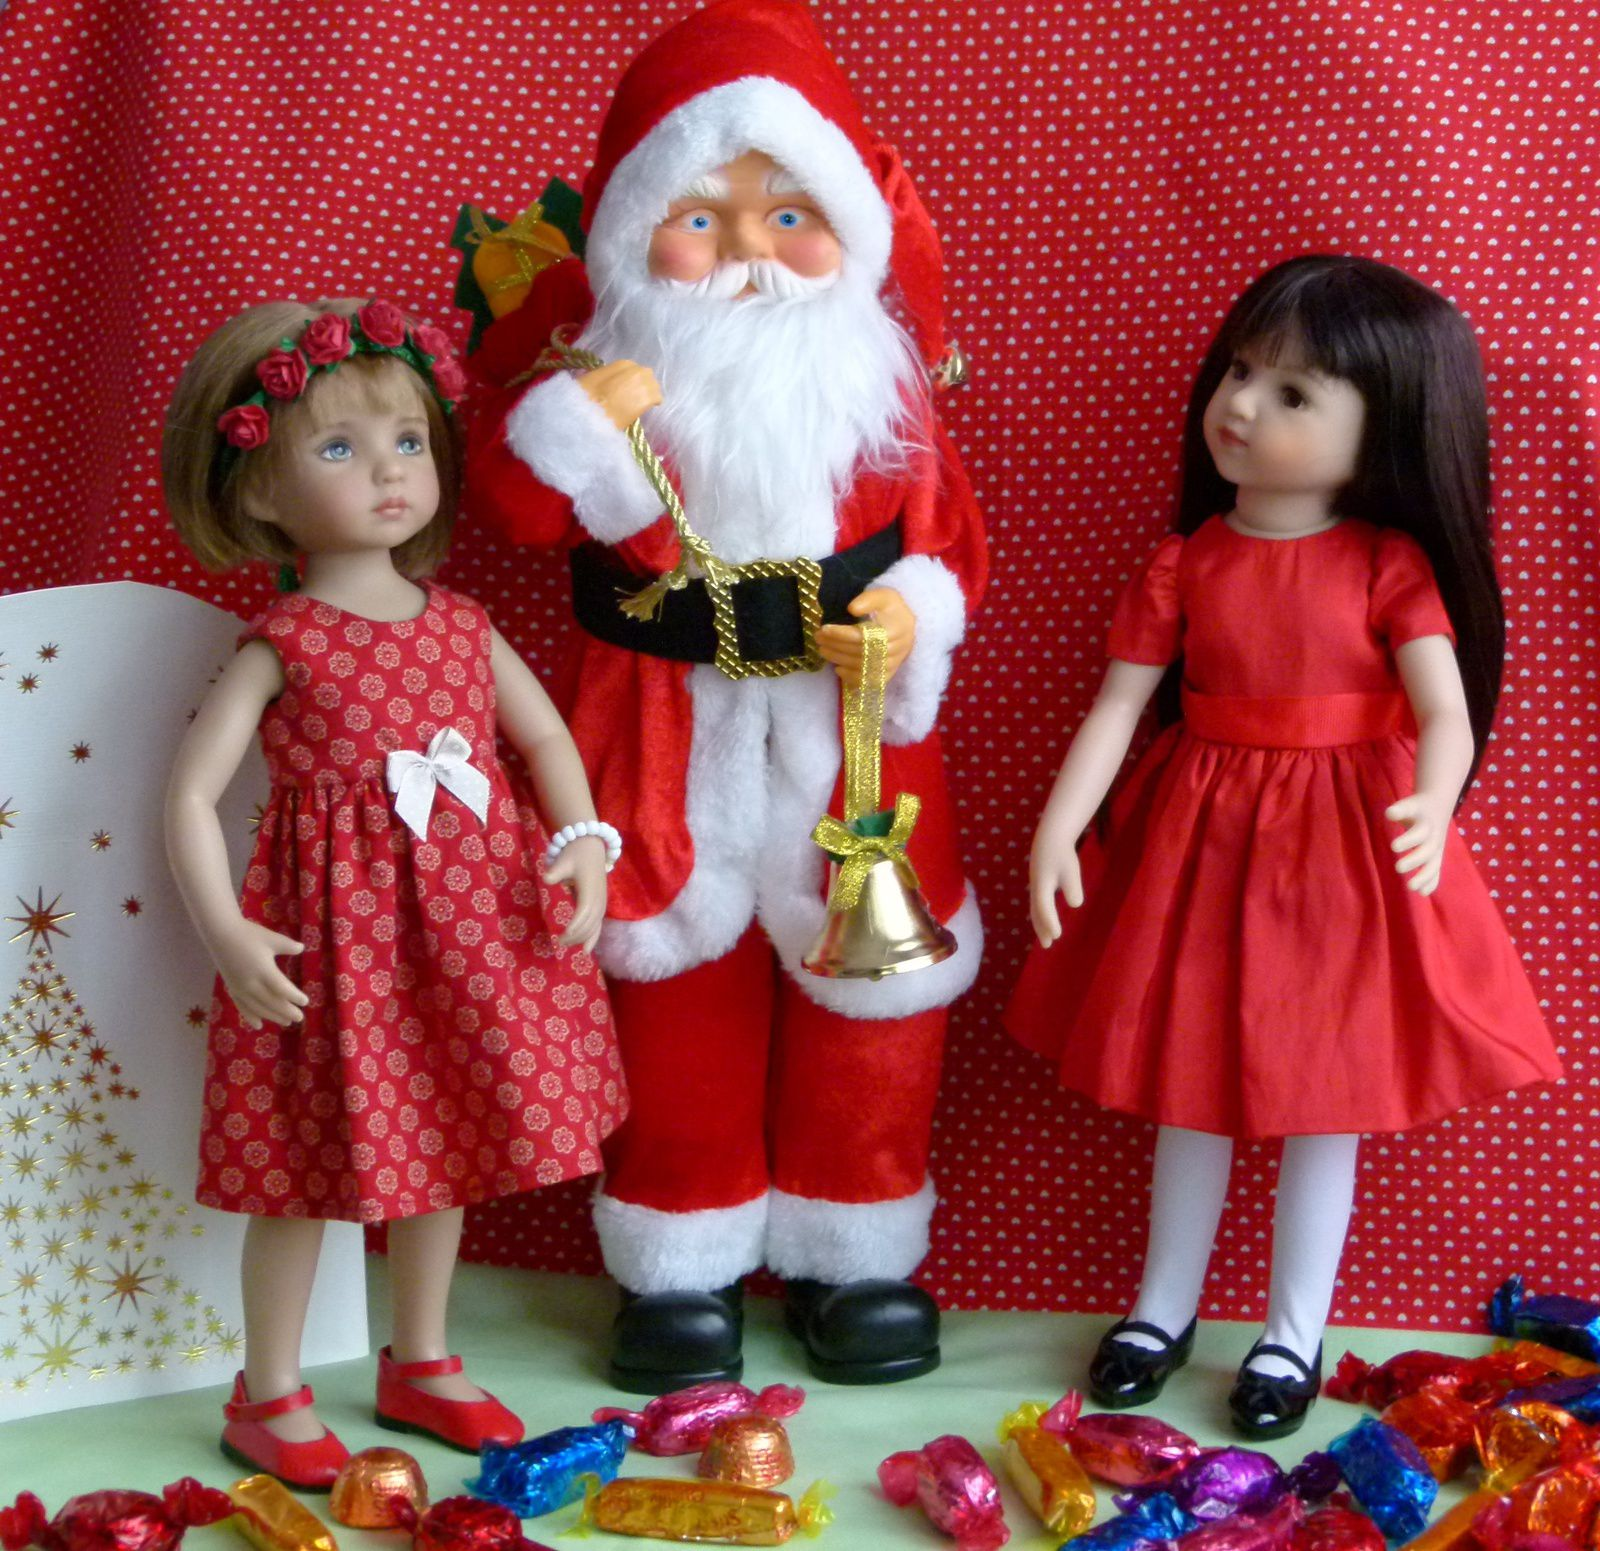 Noël de poupées - Christmas and dolls